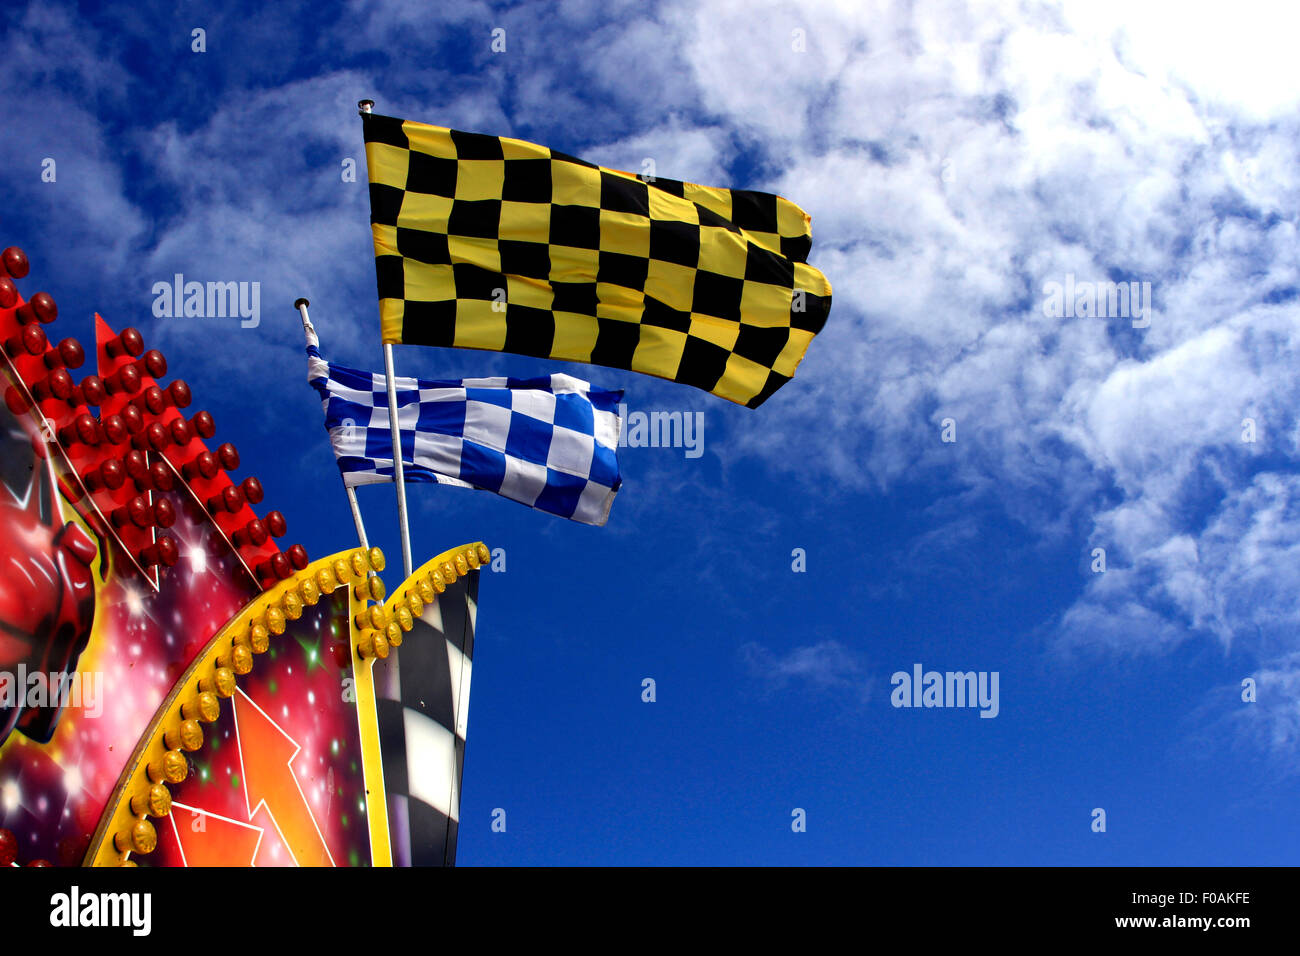 Chequered flags against a summer sky - Stock Image